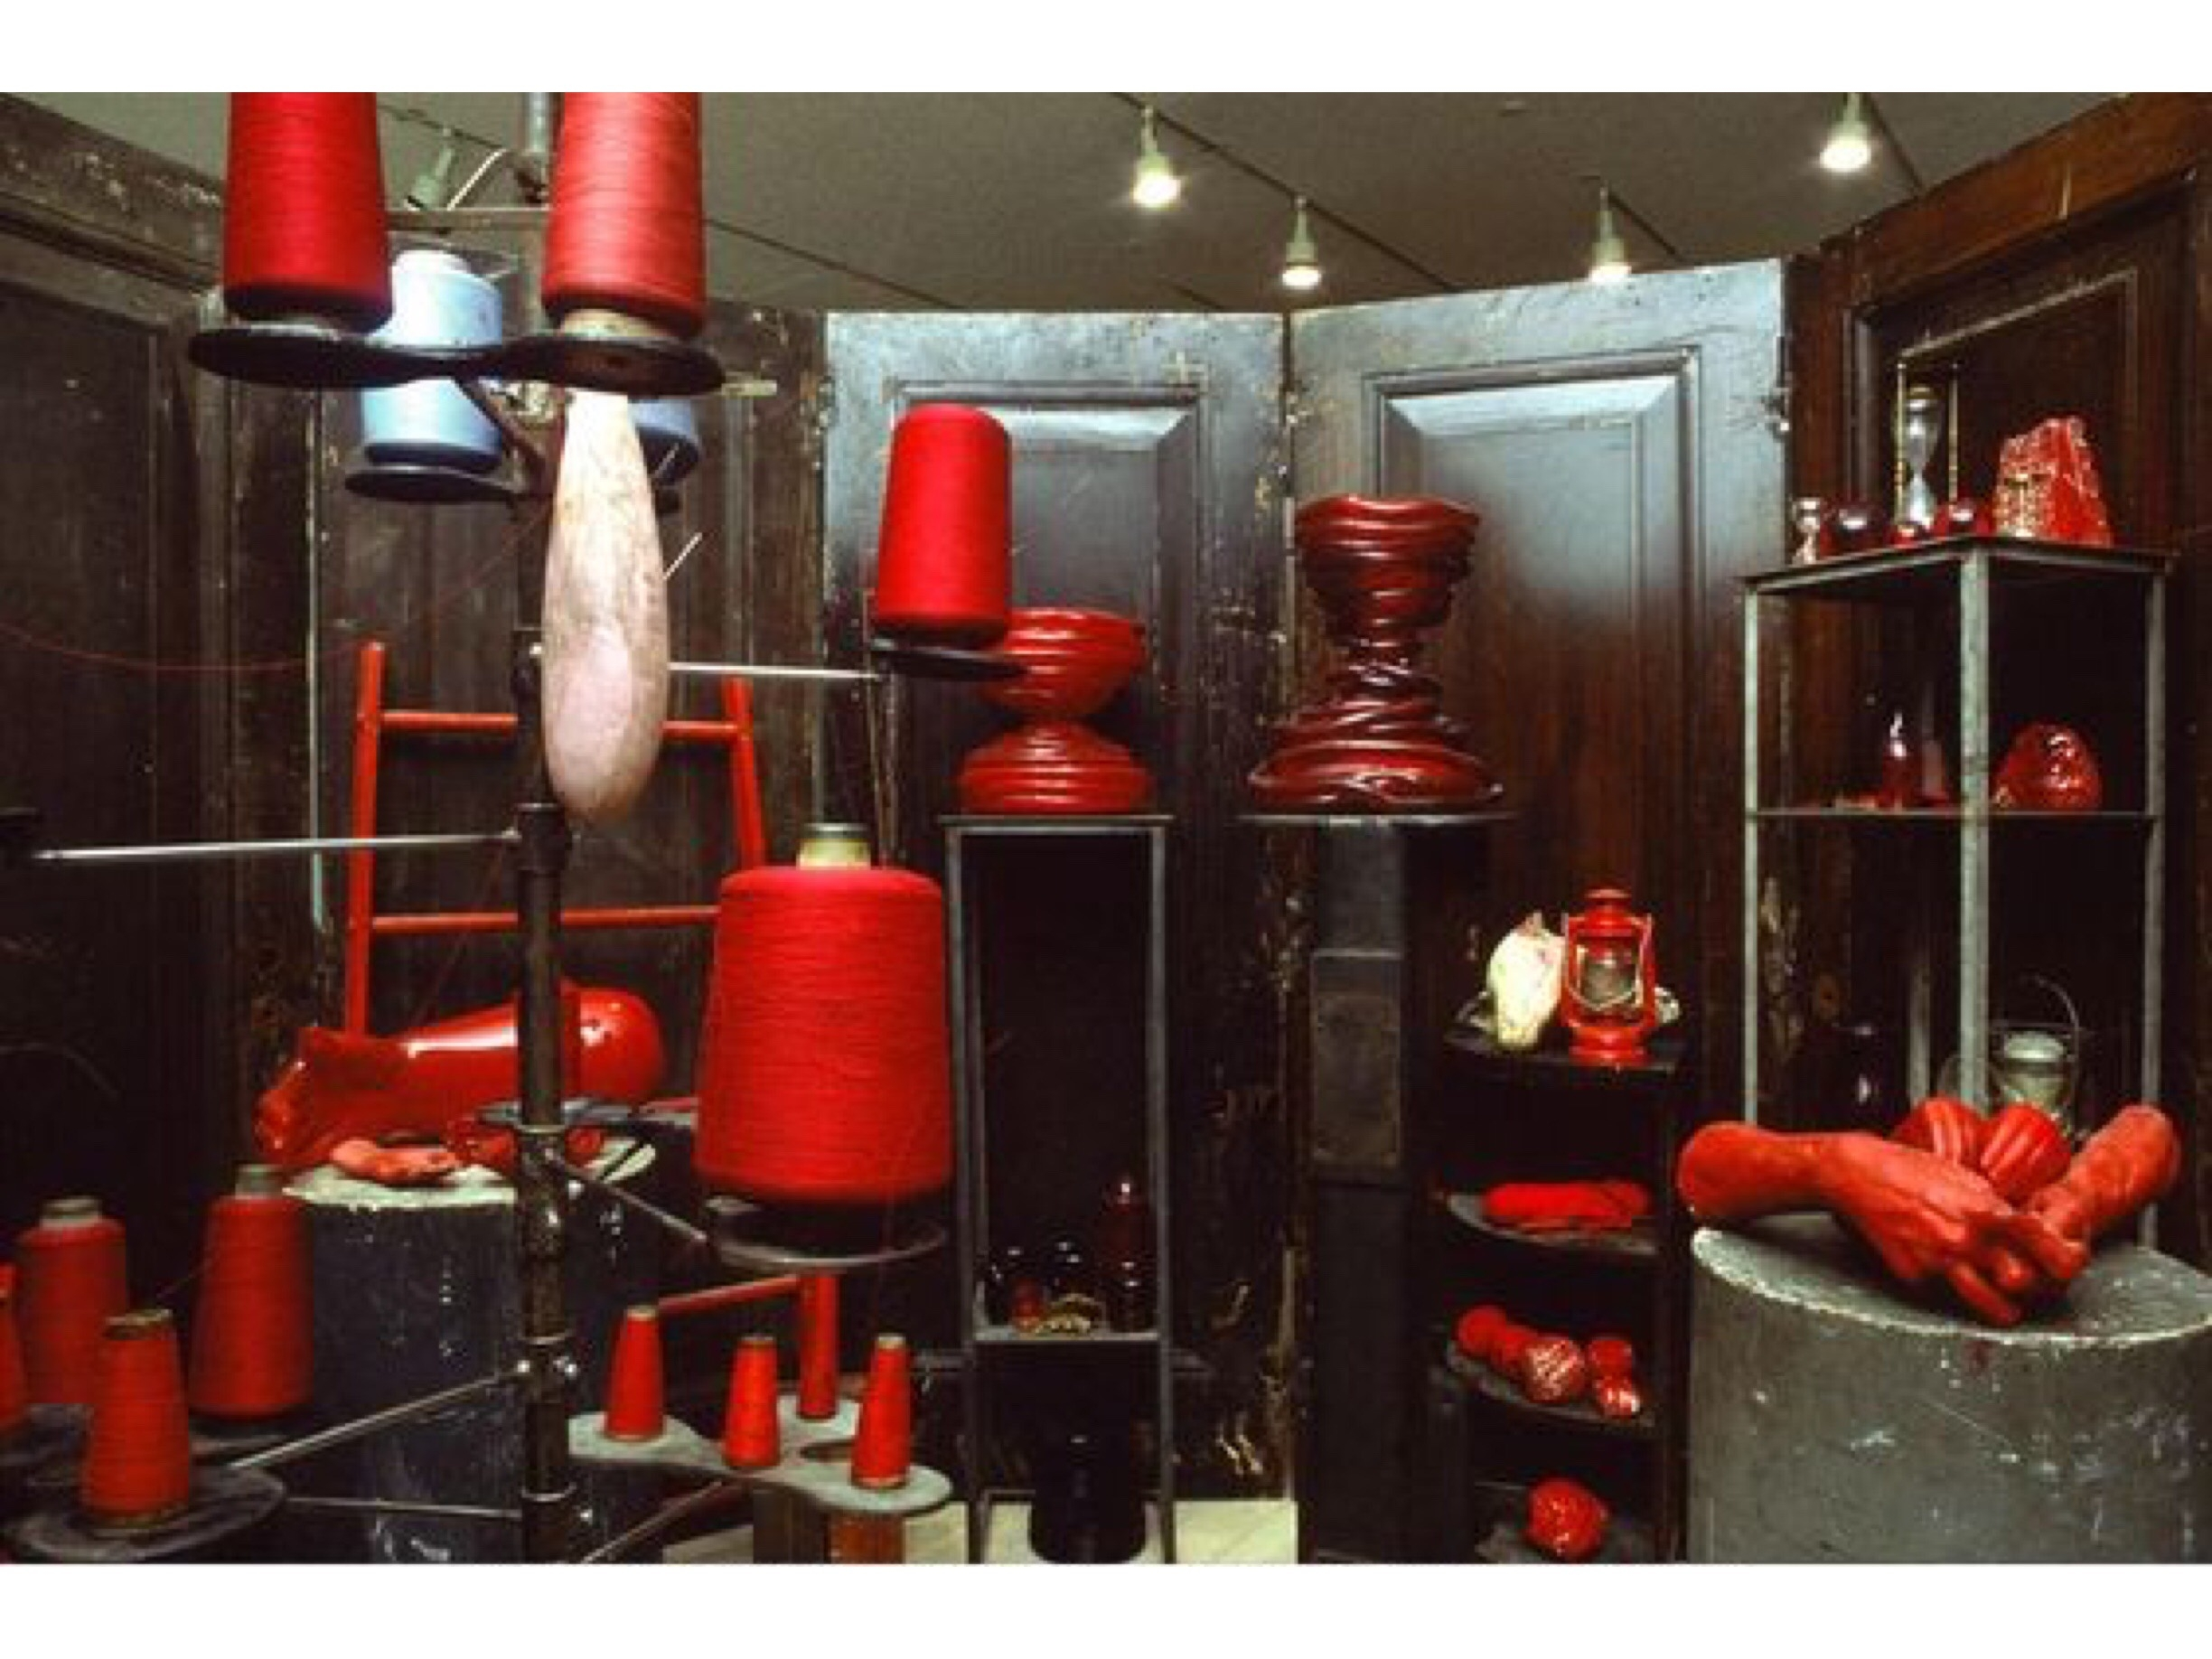 a scene from Red Room Child 1994, an installation by Louise Bourgeois that draws on memories from her childhood